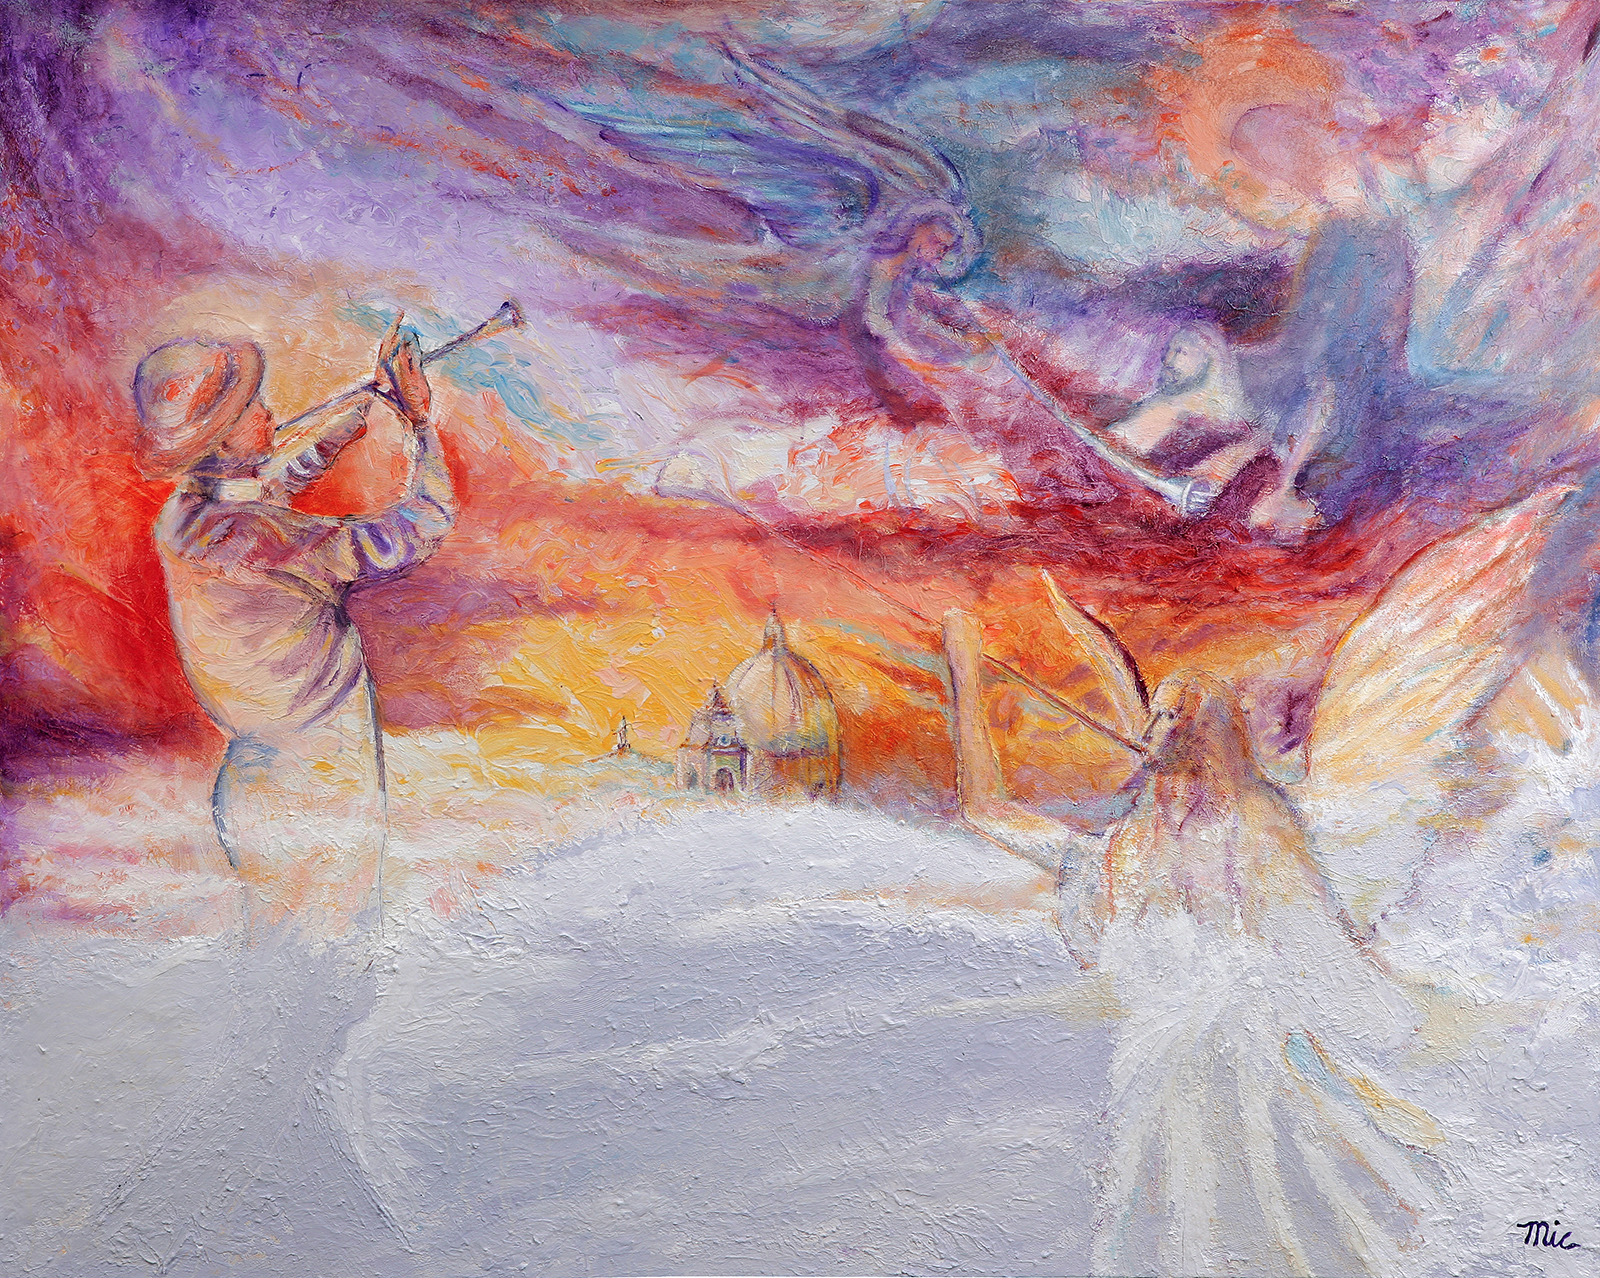 The Guarding Angels - Oil on Italian canvas, Private Collection Grace Reformed Church, Wyoming Michigan.Giclee Limited Edition and canvas prints are available. Please visit the prints gallery.